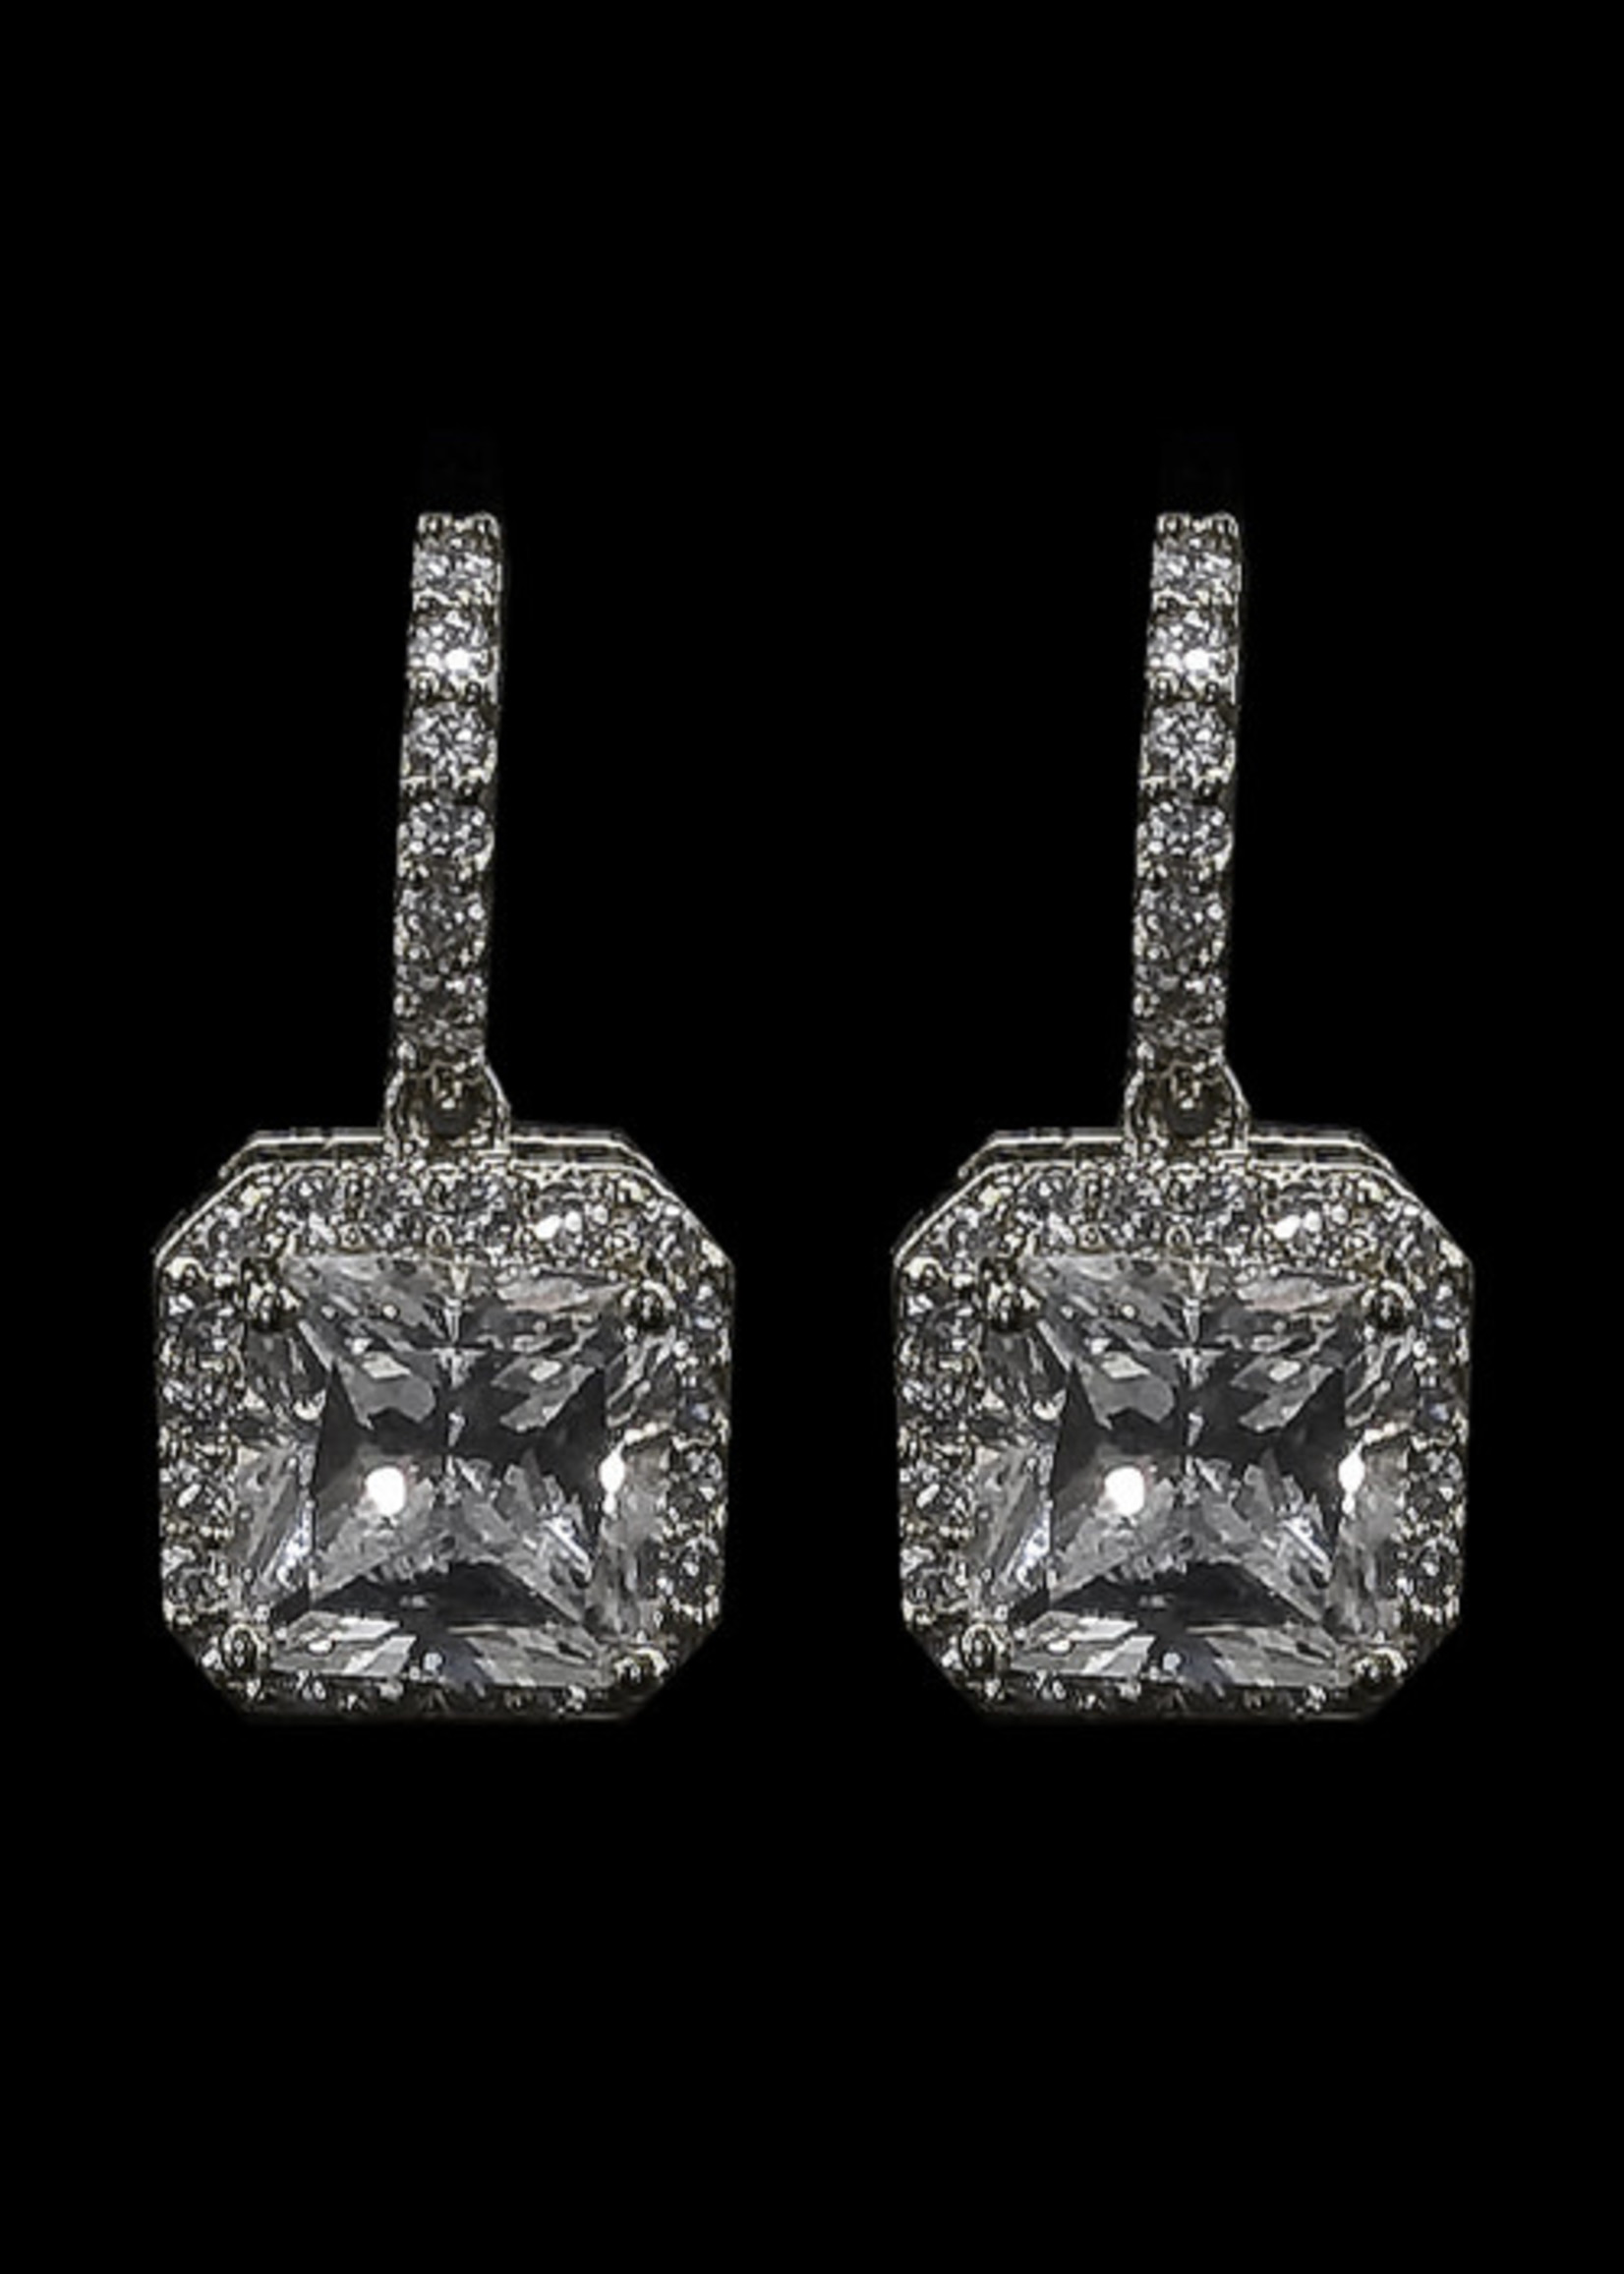 Be-Je Designs Beje - Silver Clear Square Drop Earring (VE10738E)